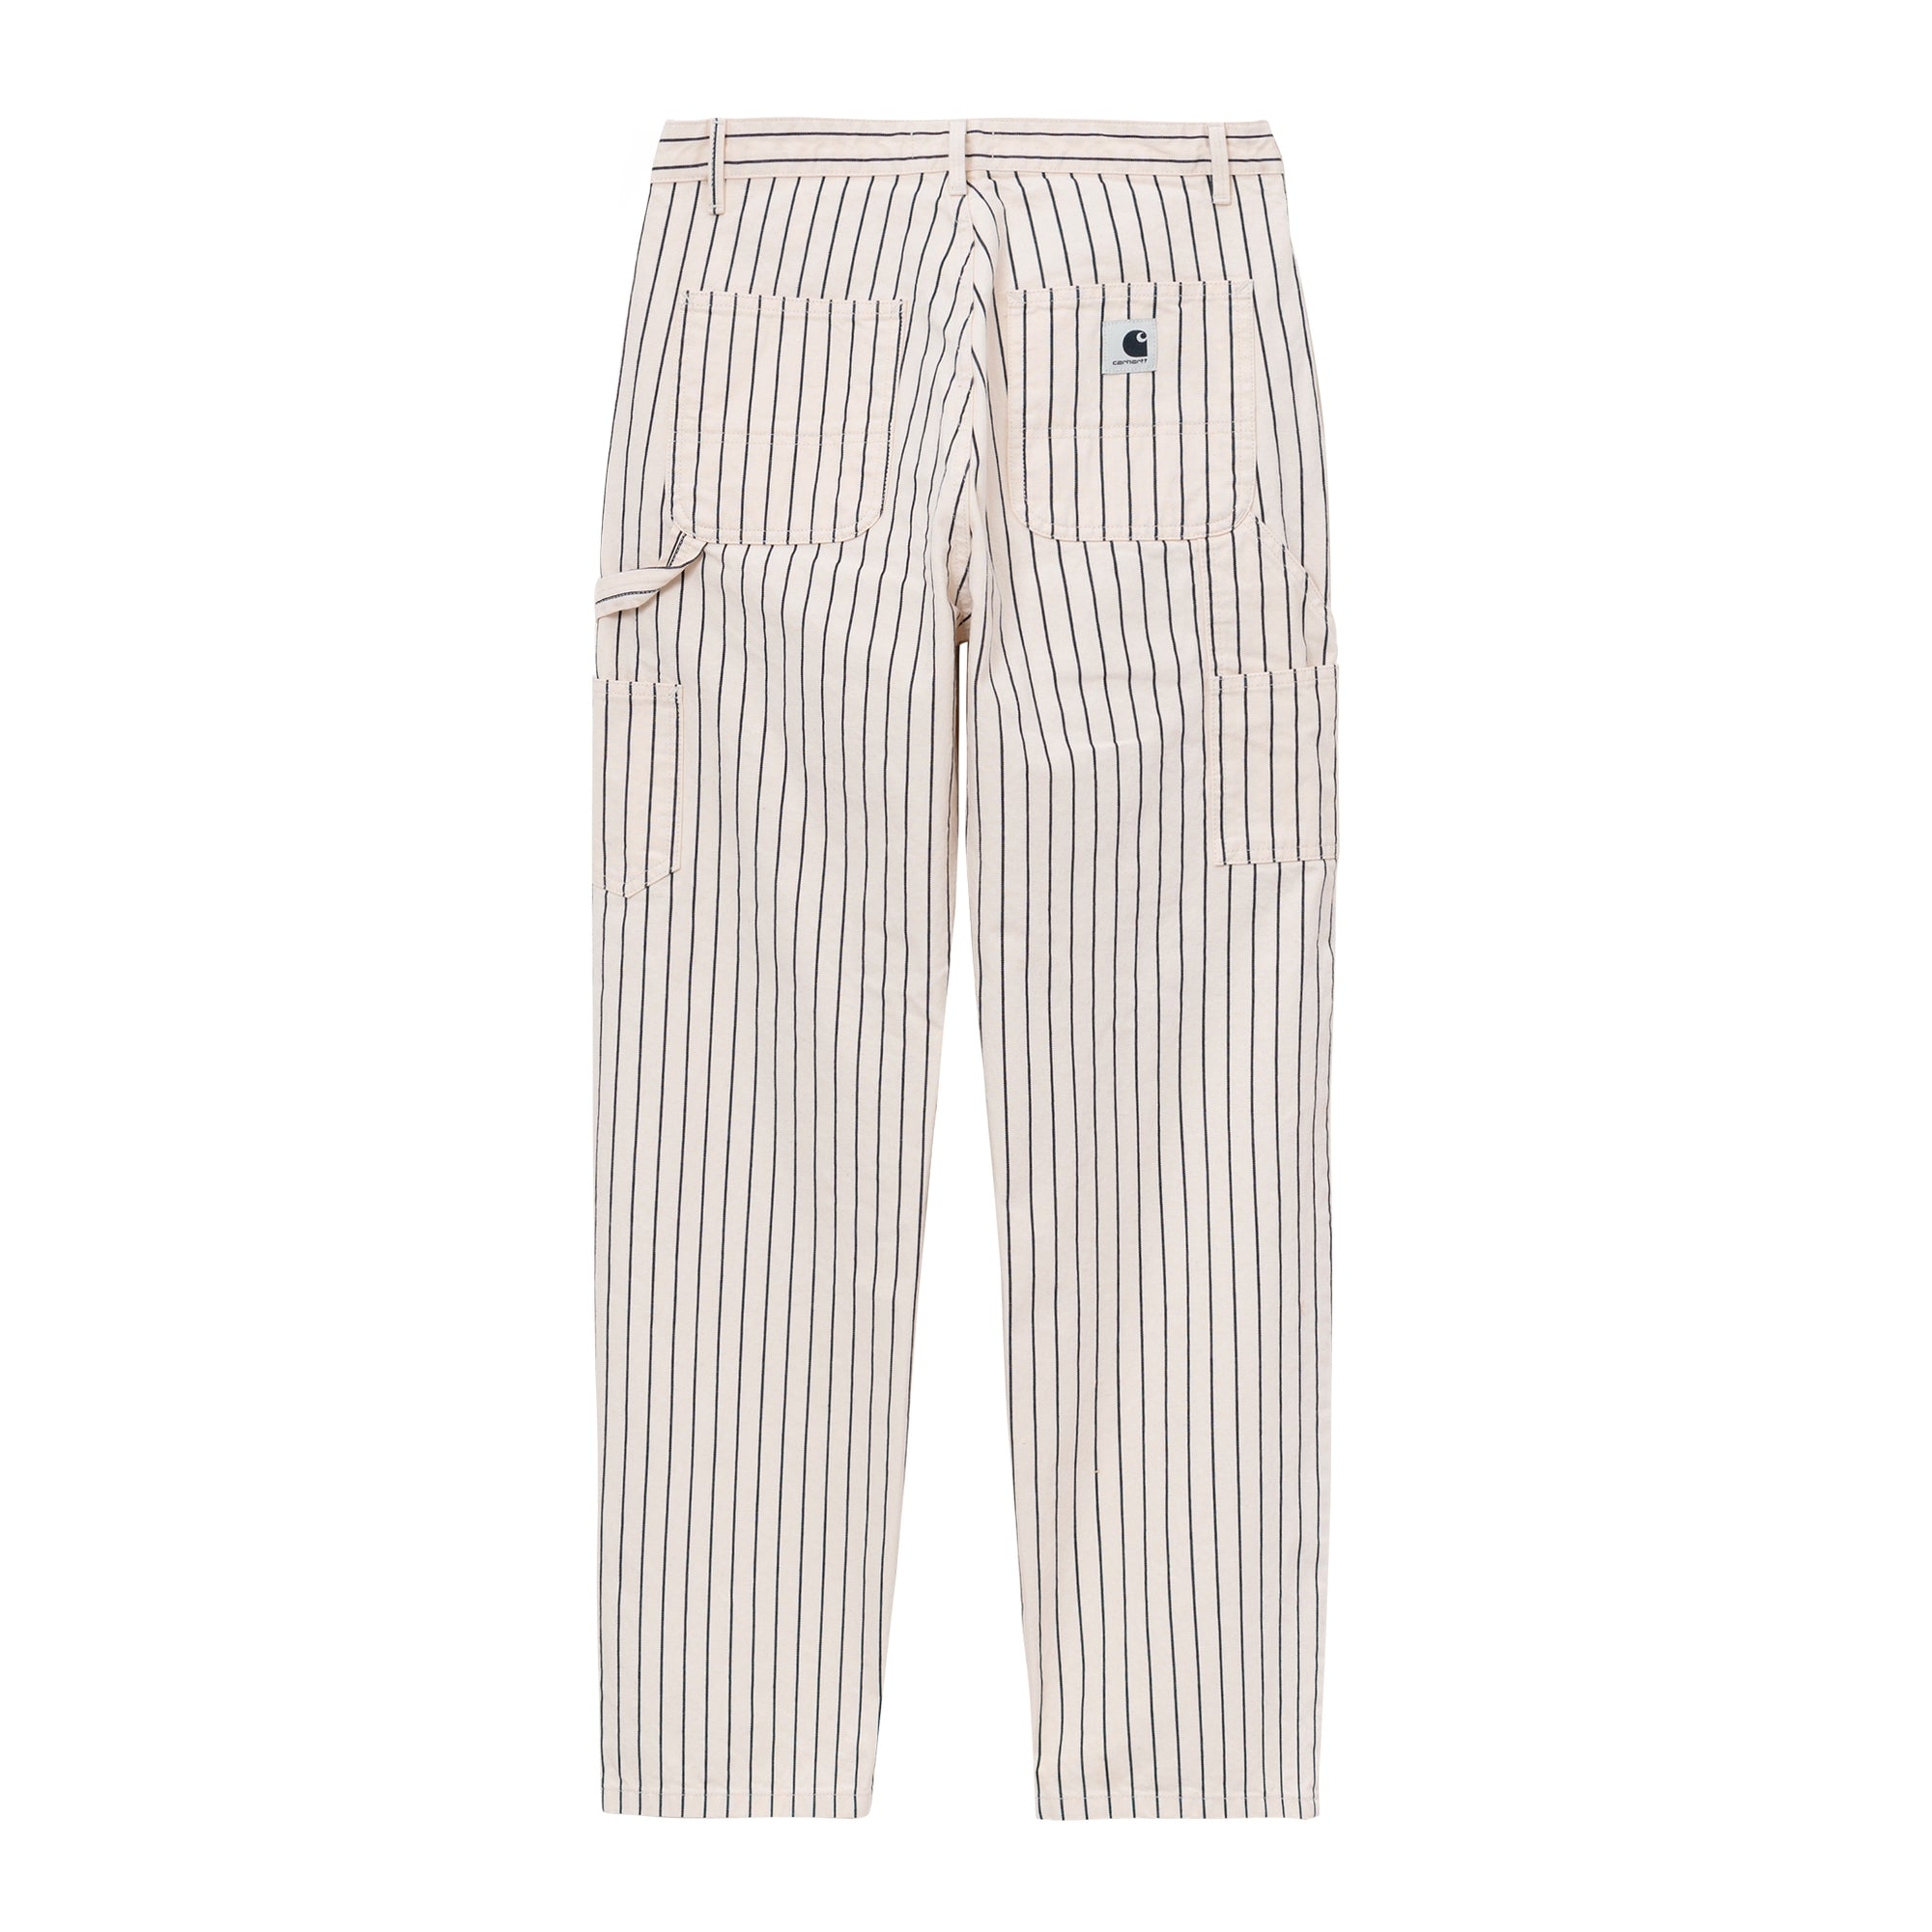 Carhartt WIP Womens Trade Pant: Hickory Stripe: Wax / Black - The Union Project